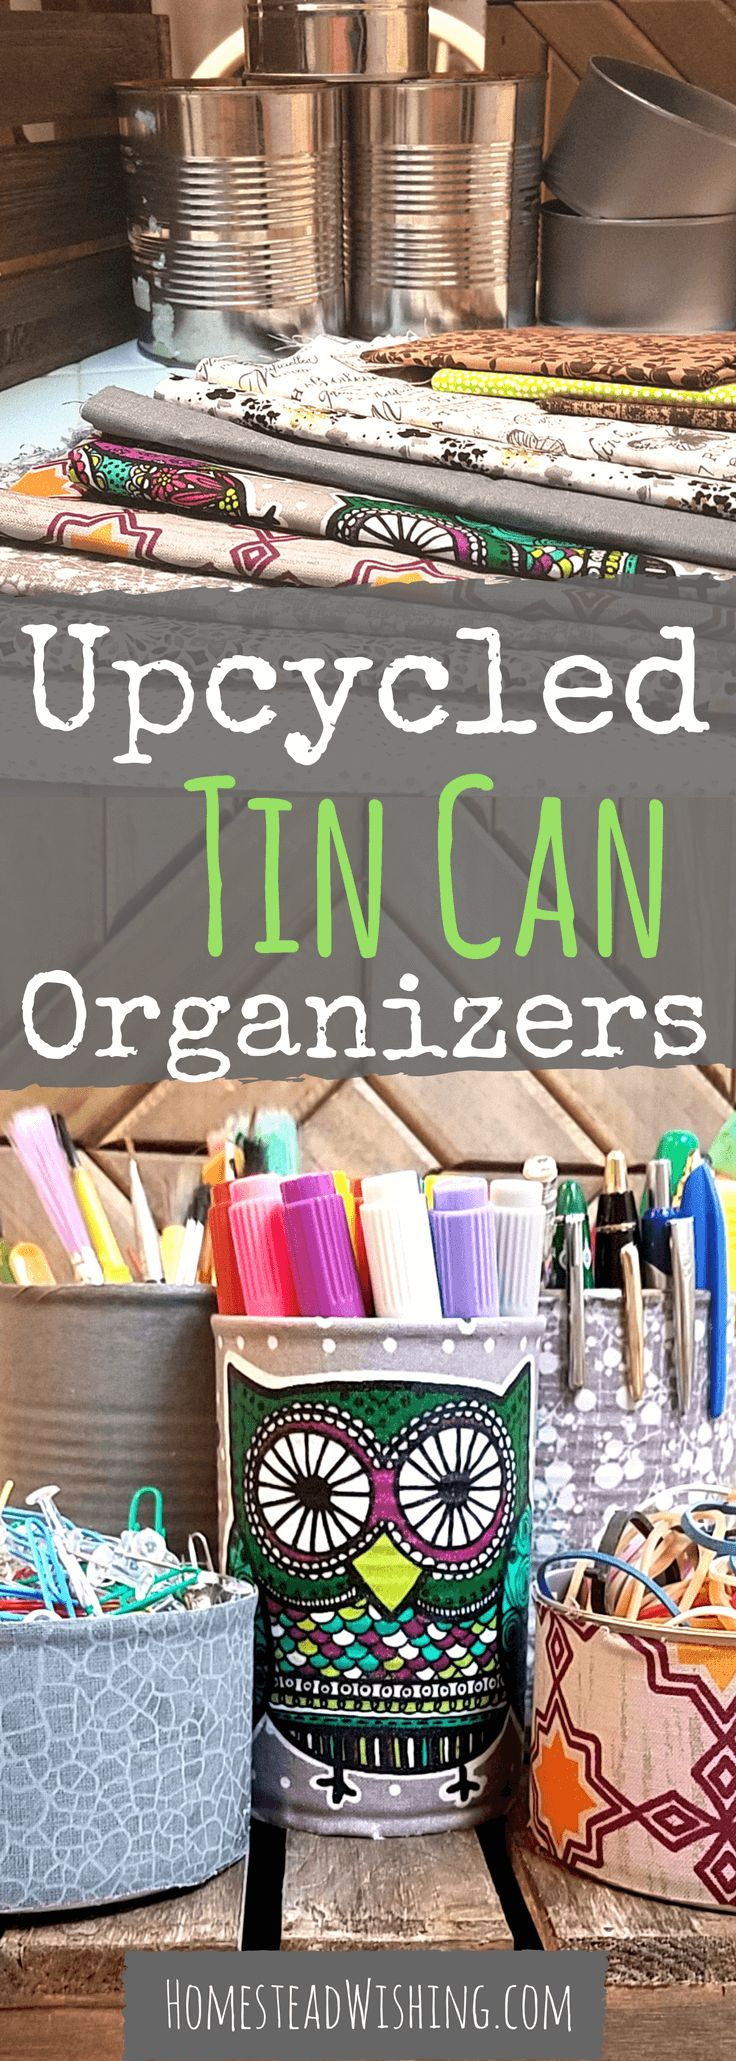 DIY Upcycled Tin Can Organizers - Try the new #LuminousWhite by @tomsofmaine , get it at @Walmart!  Let's upcycle some tin cans. Organize your life with the DIY Upcycled Tin Can Organizers. | Homestead Wishing, Author Kristi Wheeler | upcycle-crafts, tin-can-crafts, DIY-upcycle, crafting-tin-cans. |